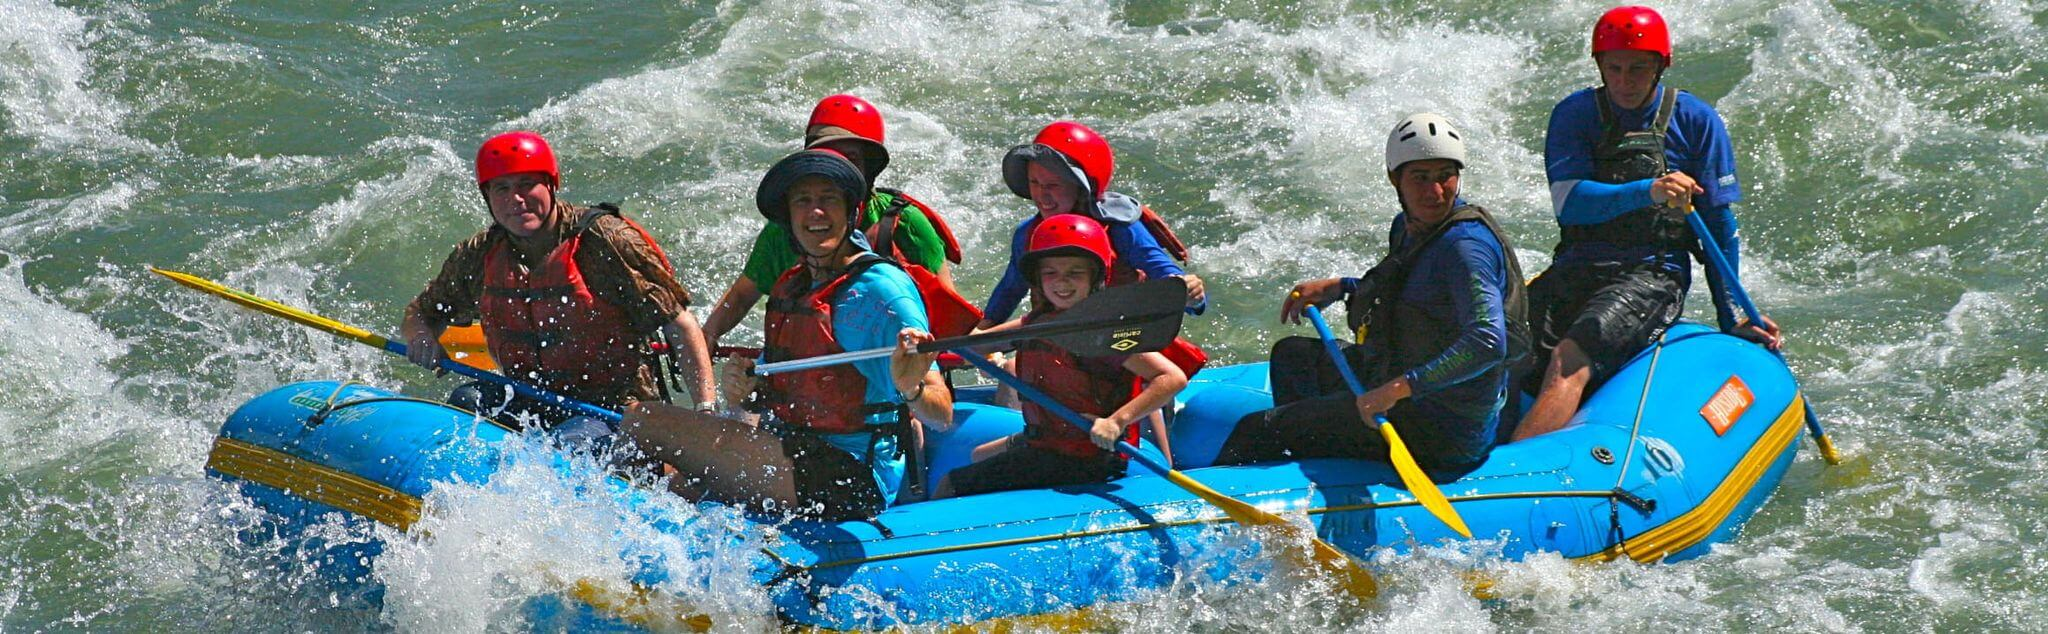 Rafting in Jaén